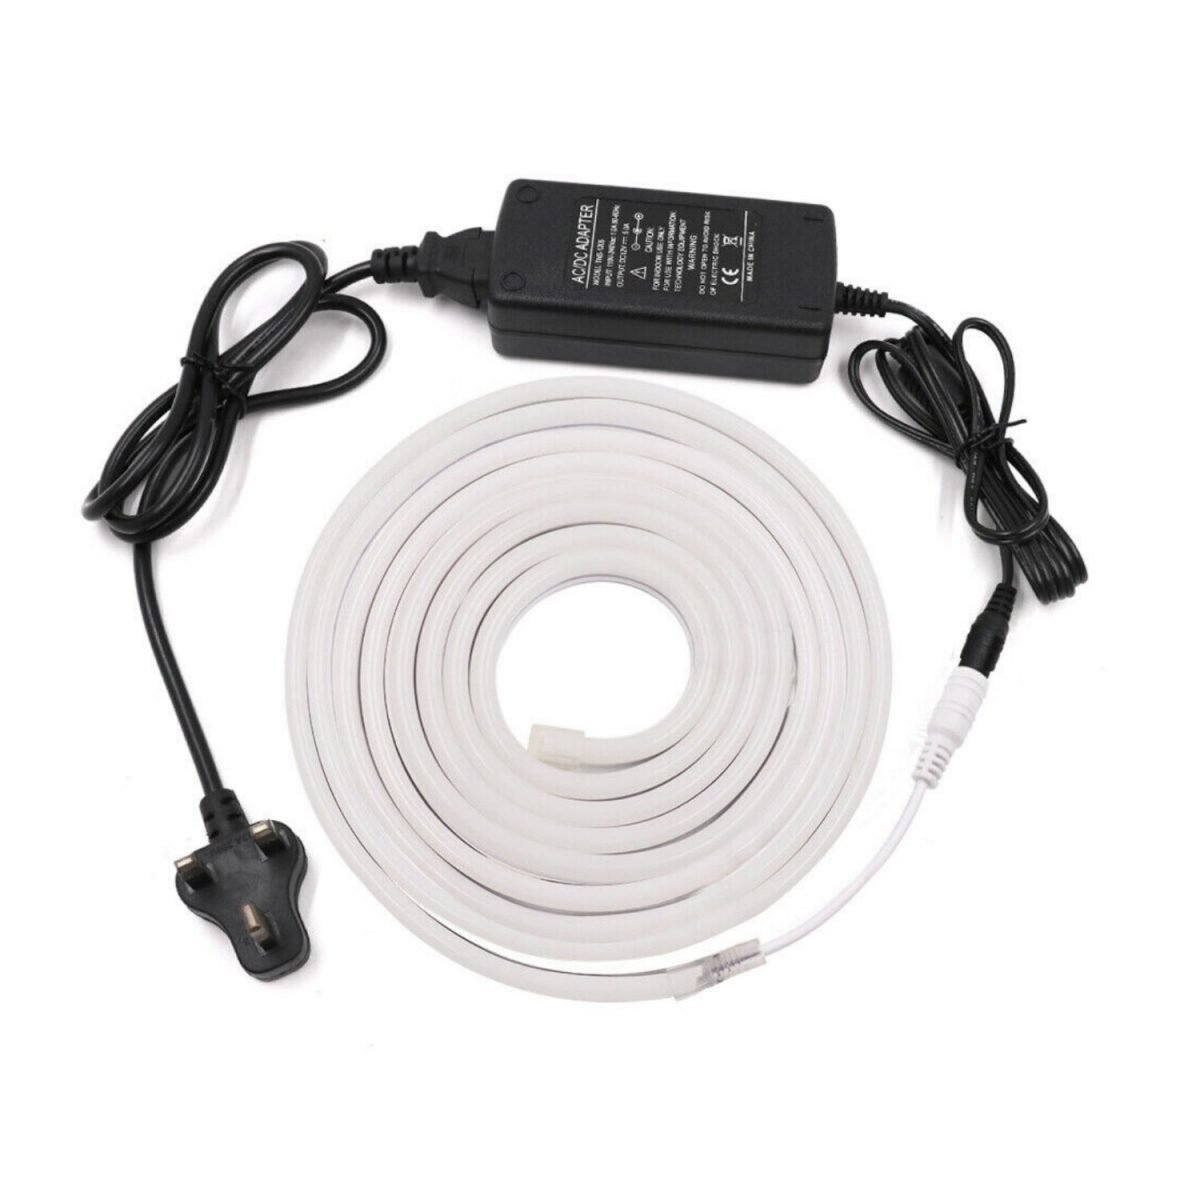 ATOM LED Neon Flex Warm White 12V 6 x 12mm